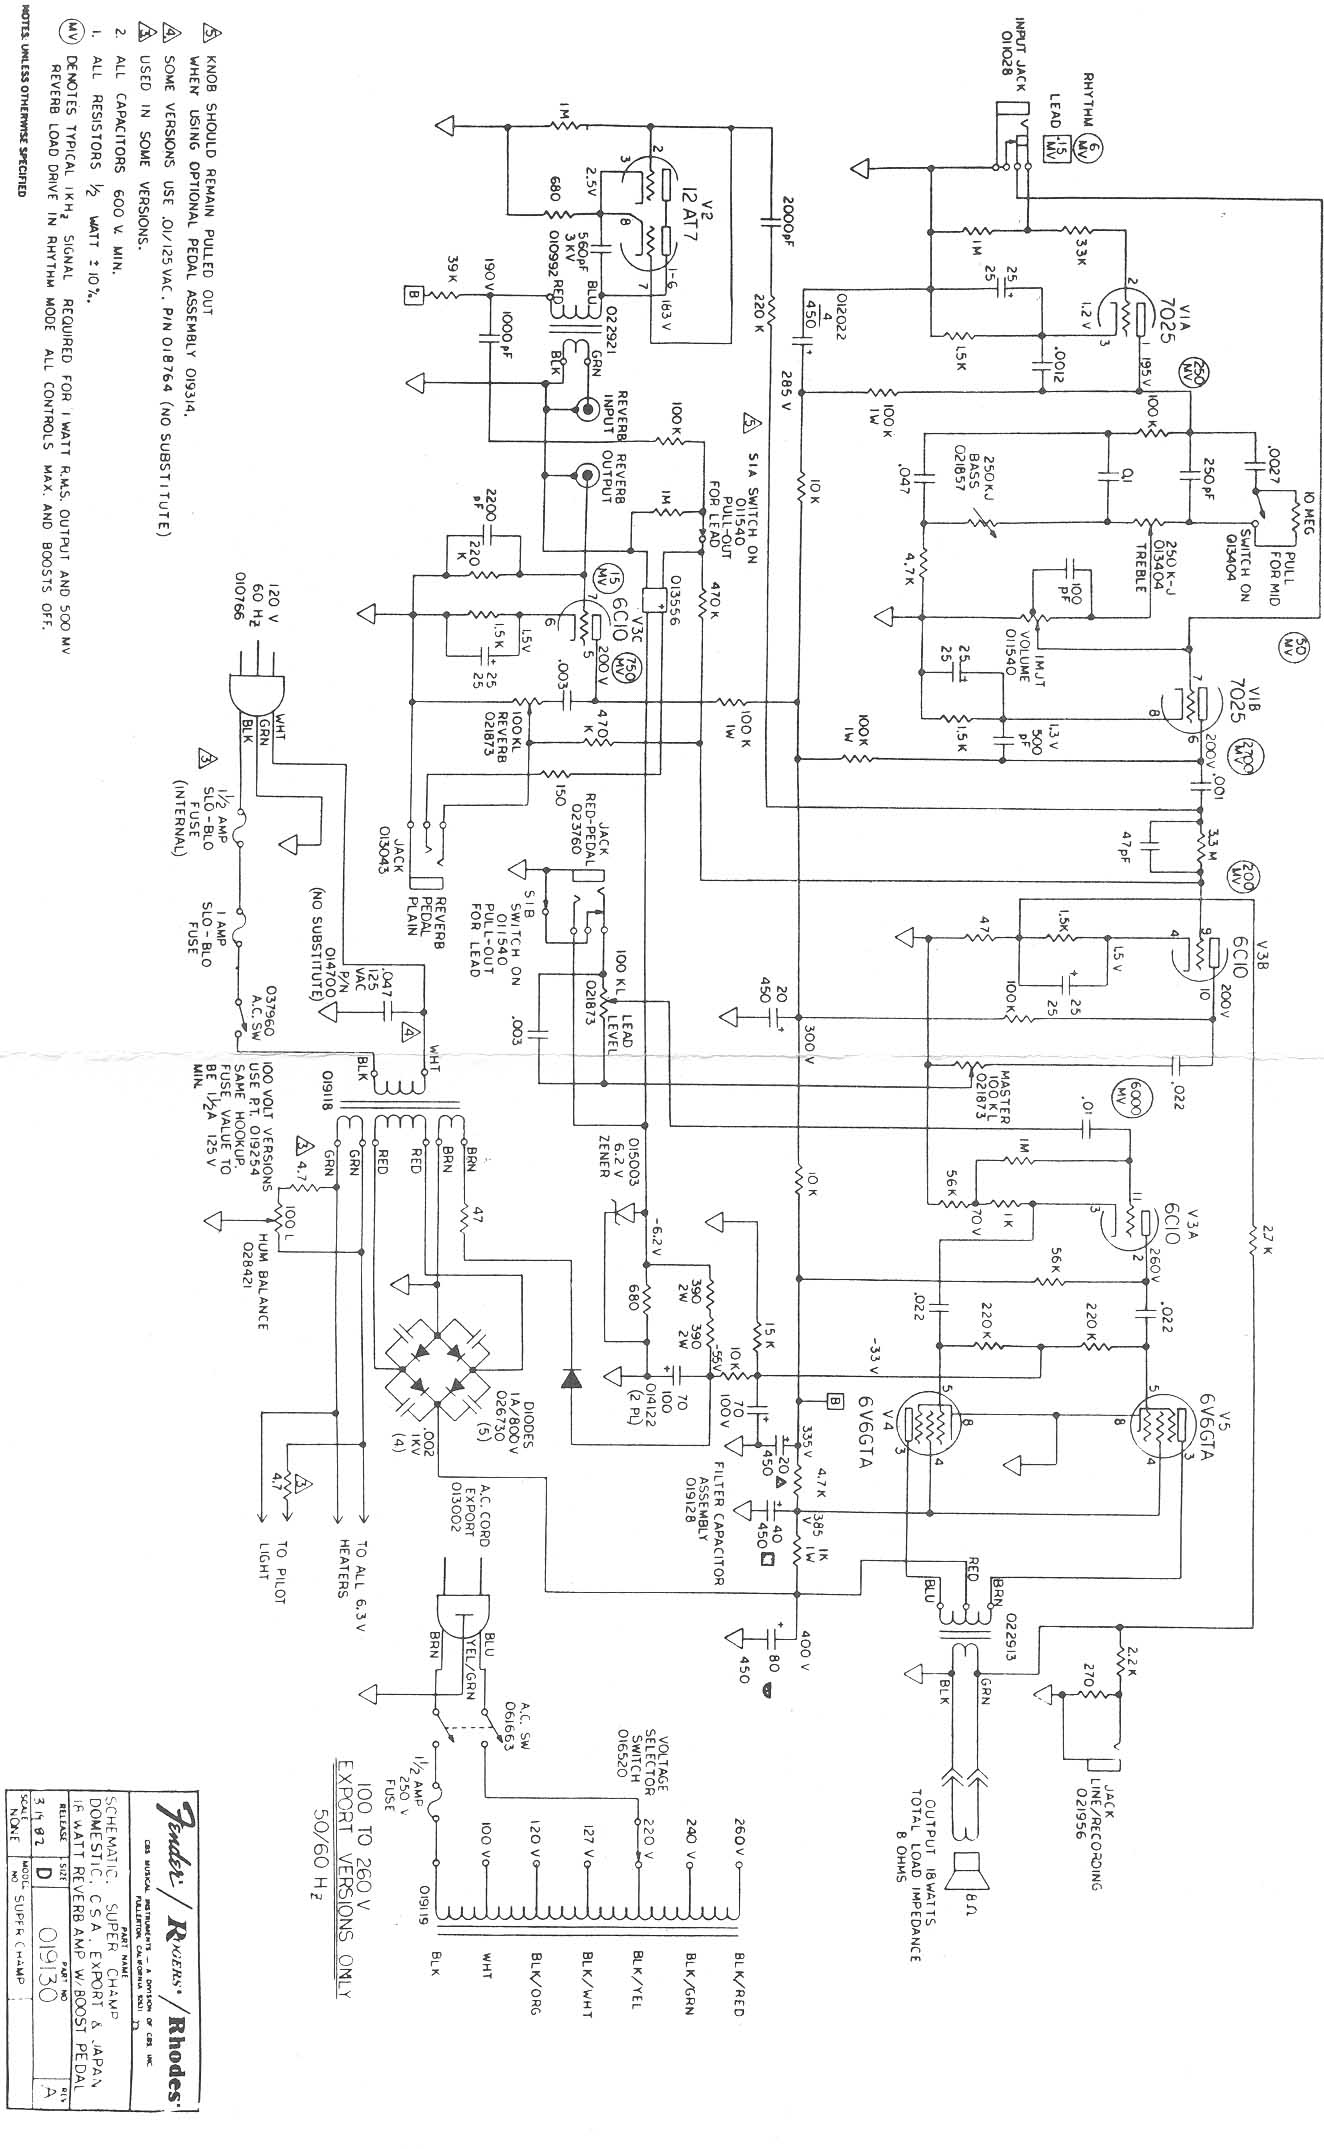 hight resolution of fender lead iii wiring diagram wiring diagram data schema fender stratocaster series wiring diagram fender lead